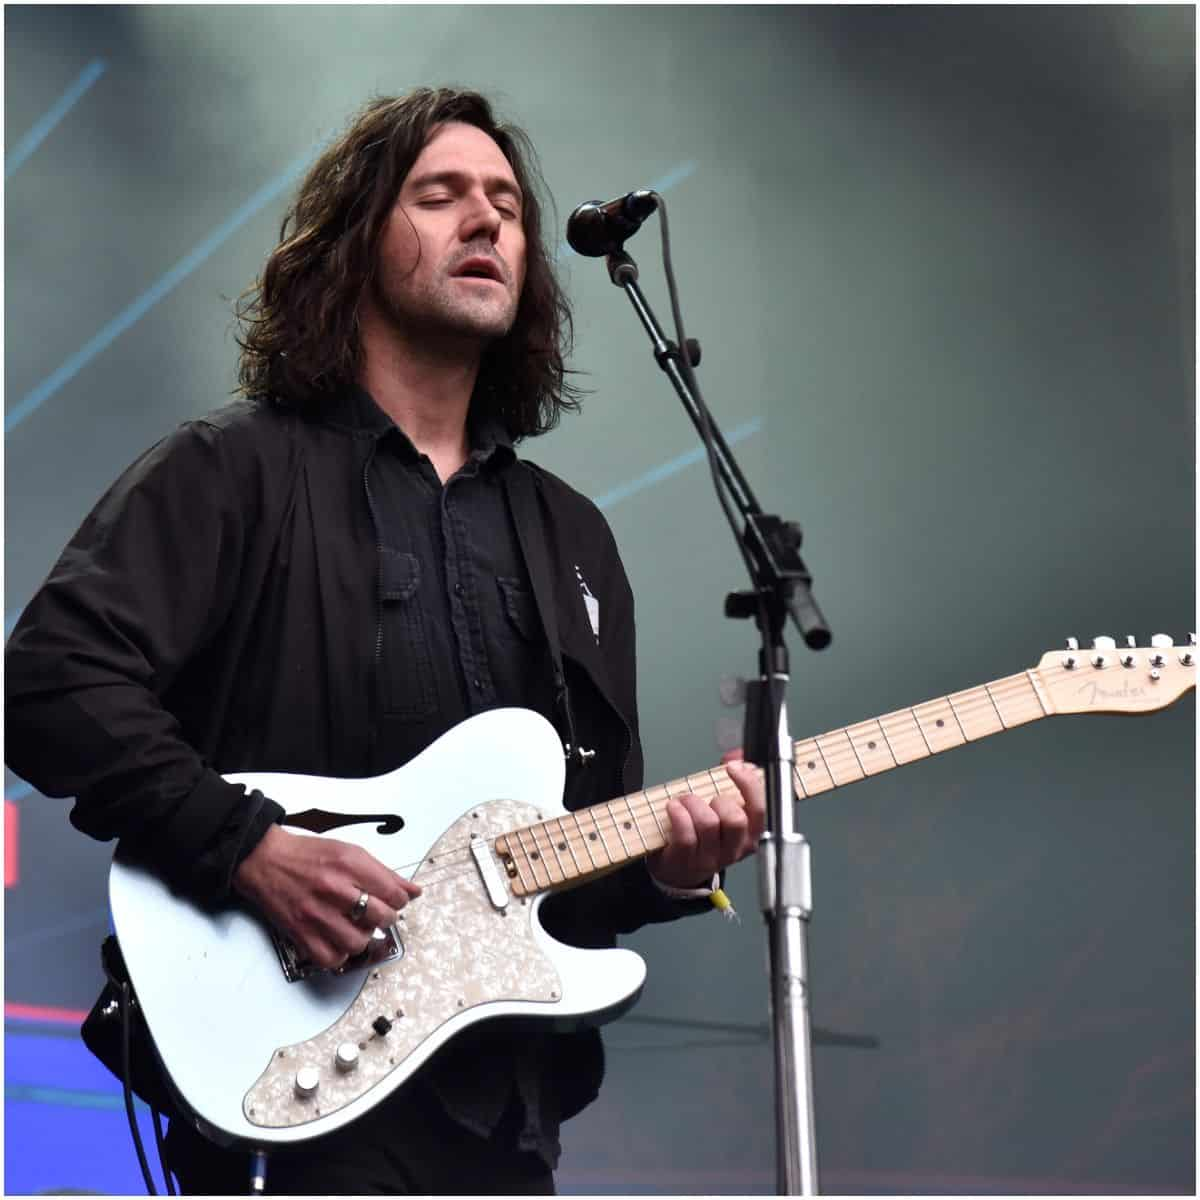 what is the net worth of Conor Oberst